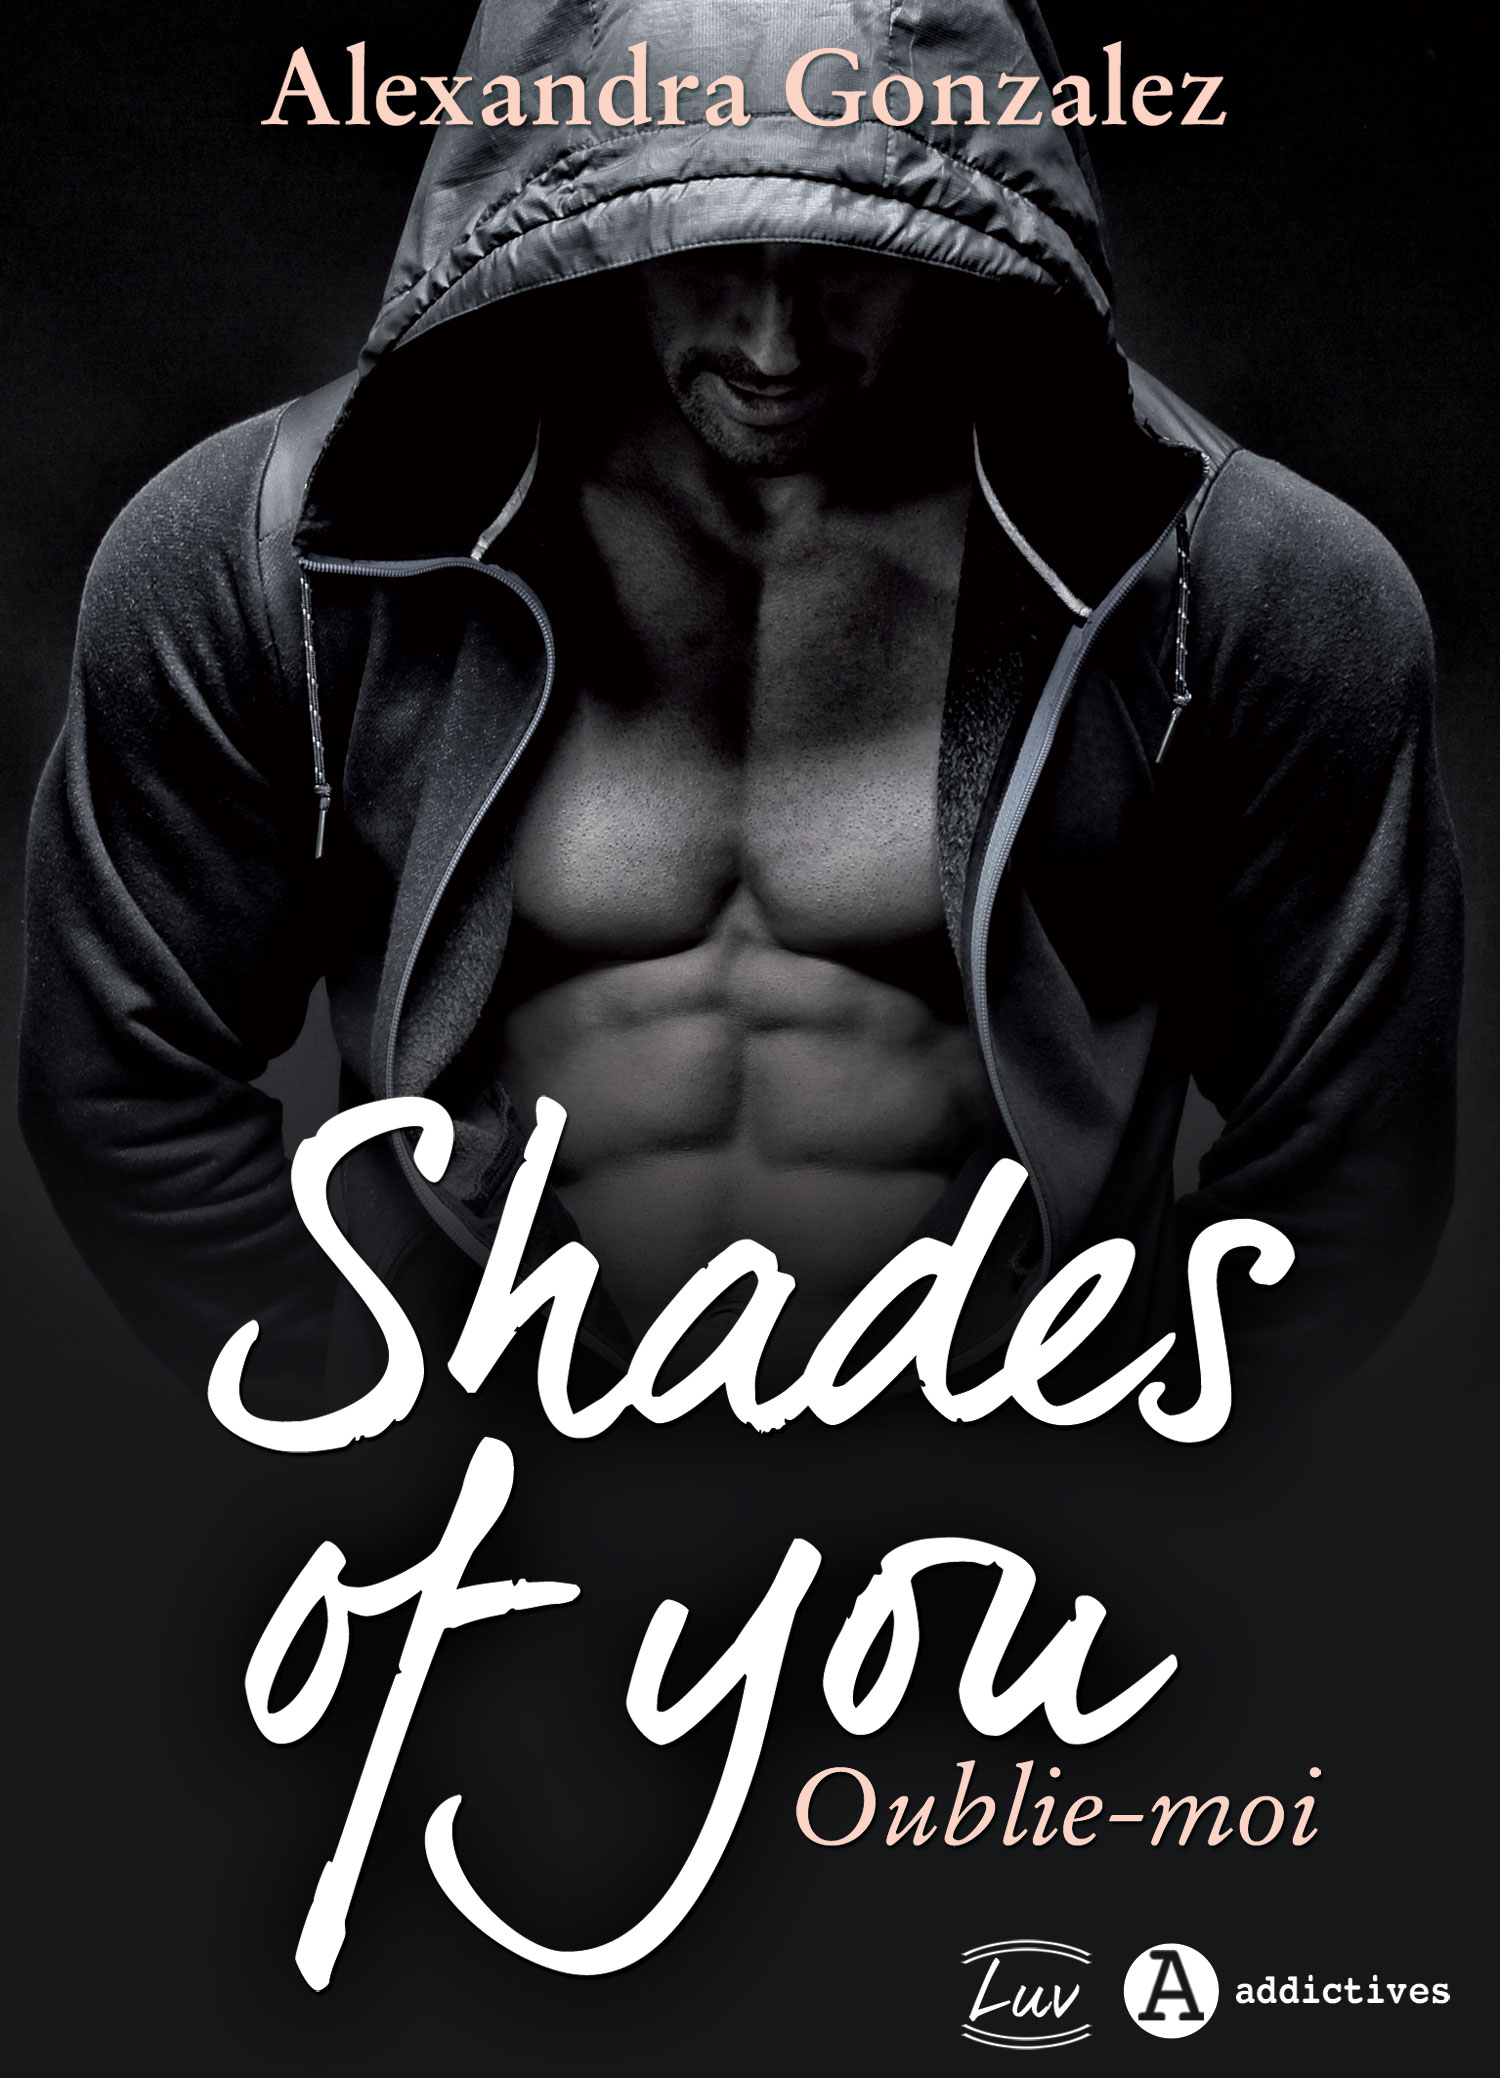 Shades of You, 2 - Oublie-moi